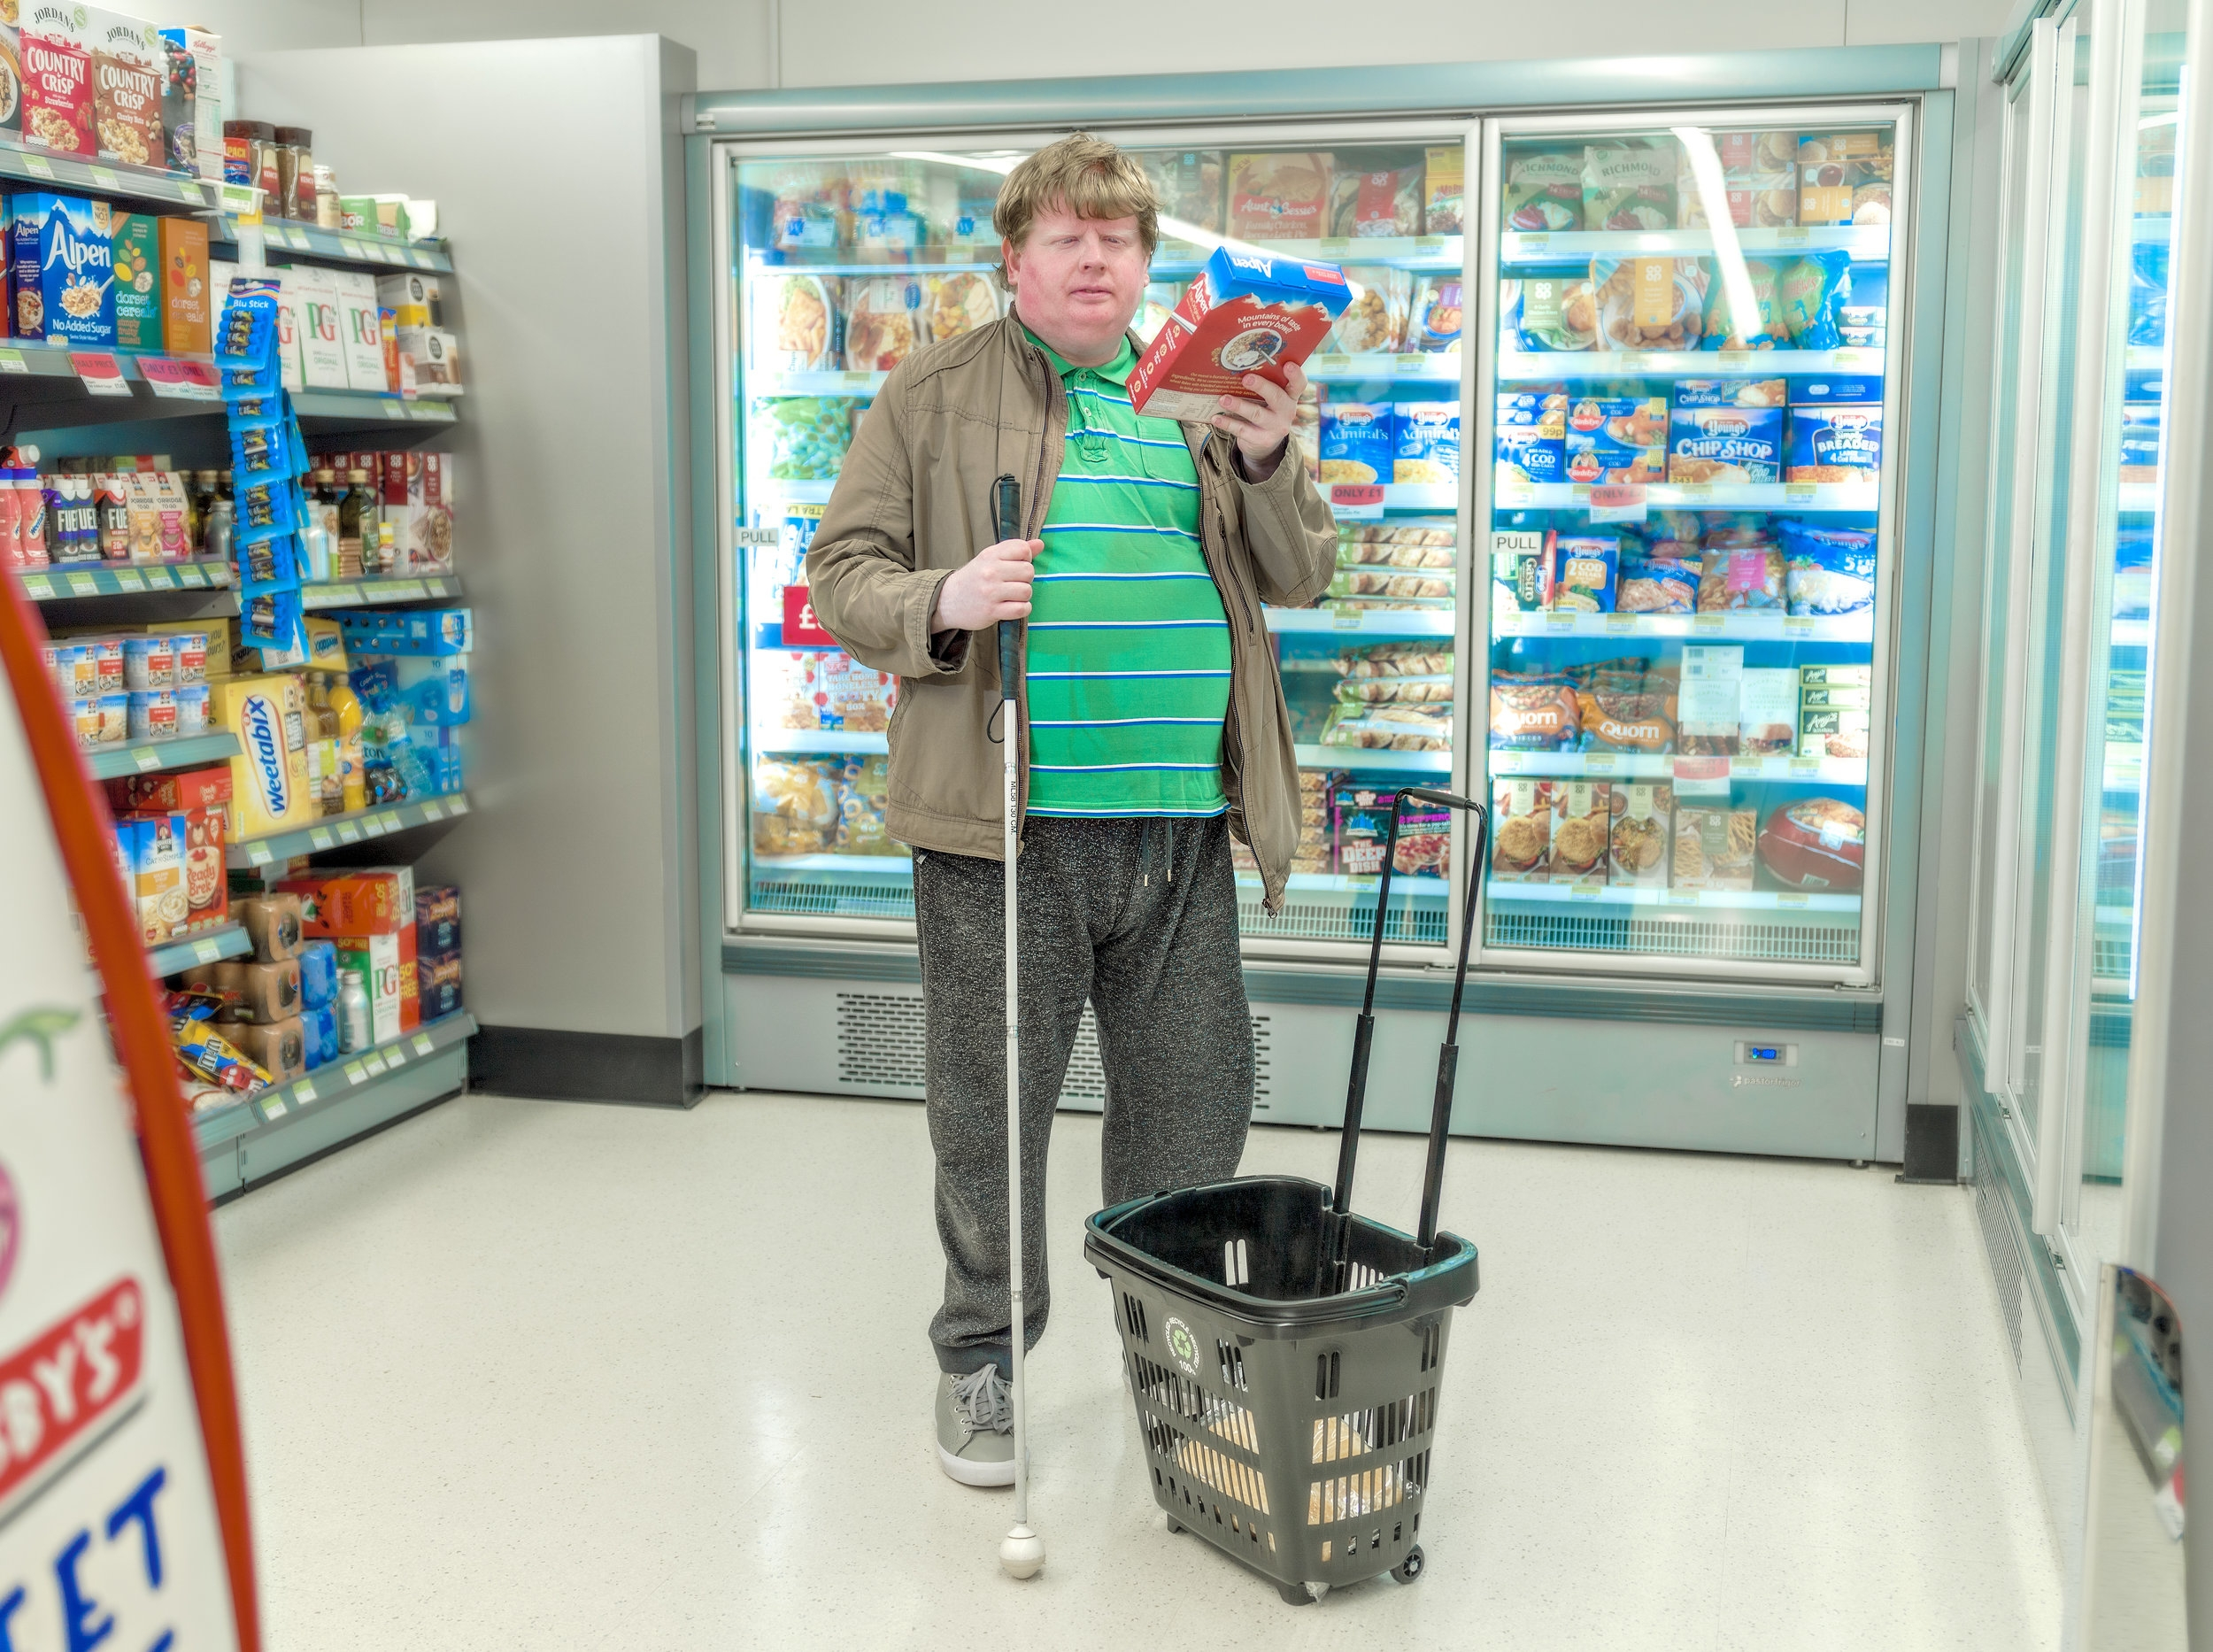 """Justin Rumsby photographed holding his favourite package of cereal at his local supermarket which is routinely moved to different sections around the store making hard for him to find. Ipswich. This image was selected in the British Journal of Photography's 2018 """"Portrait of Britain"""".  http://gallery.portraitofbritain.uk/portrait-of-britain-book-available-for-pre-order-now/"""